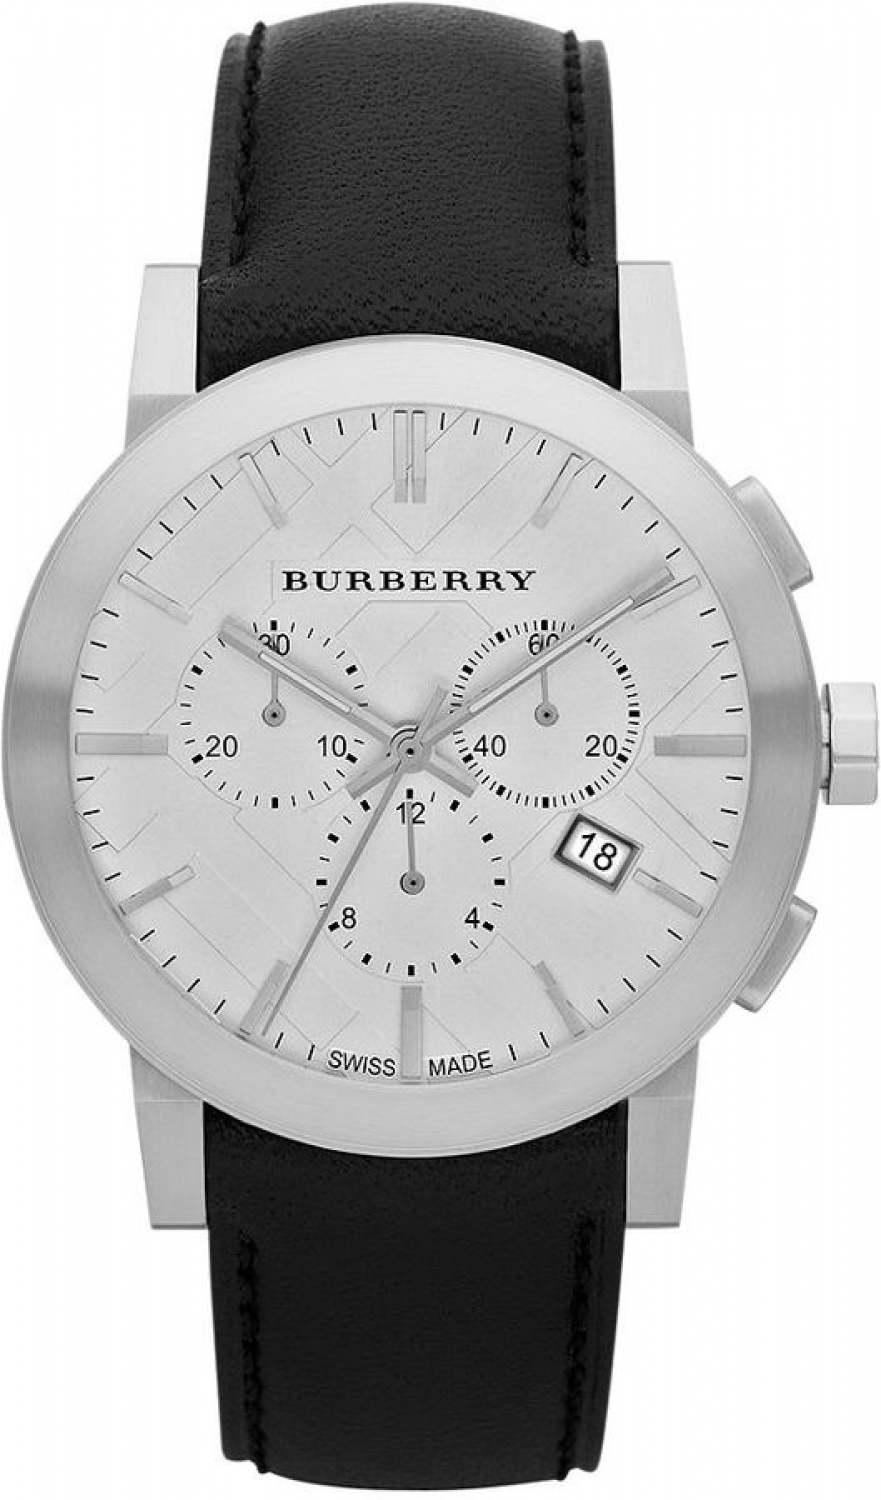 Burberry-BU9355-Silver-Dial-Chronograph-Black-Leather-Strap-Mens-